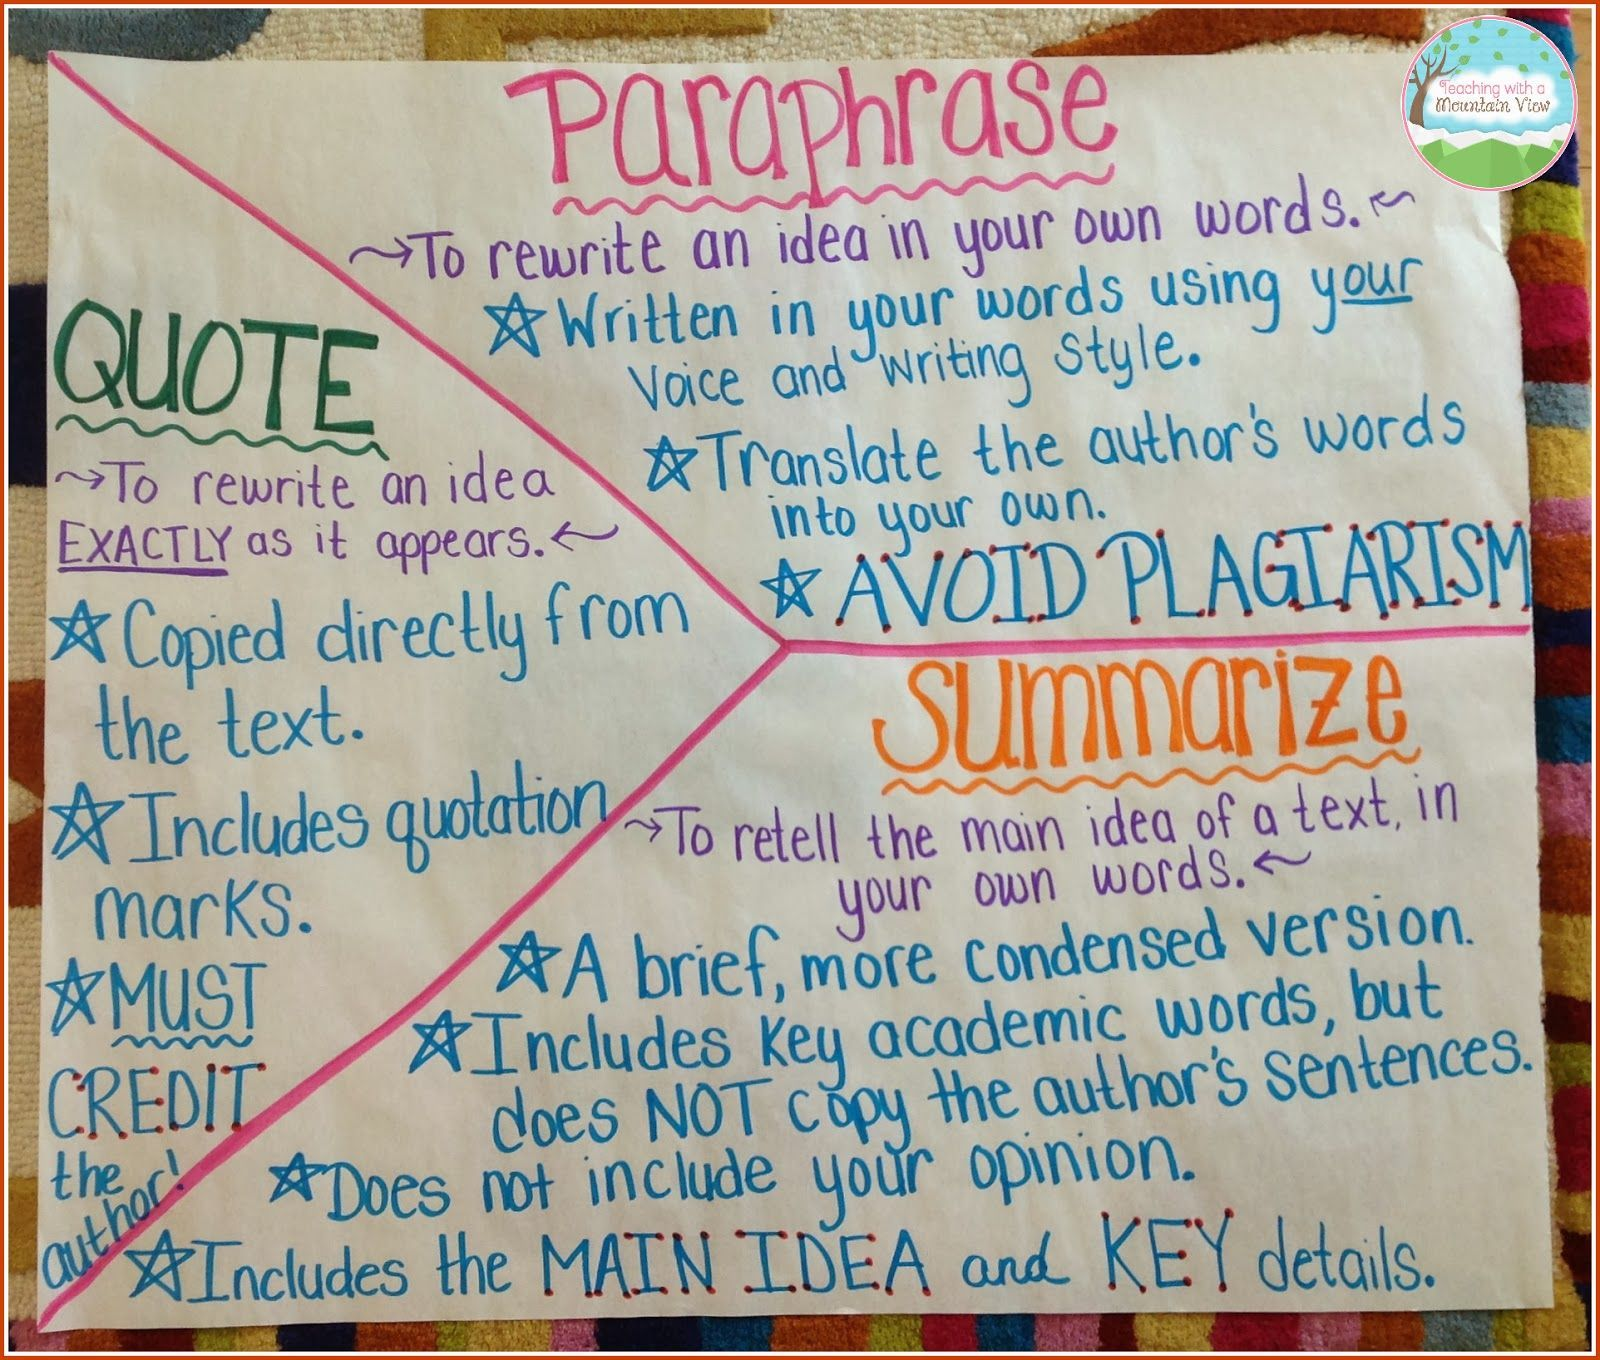 Pin On Reading Comprehension Strategie Skills A Paraphrase Condense Information From Source